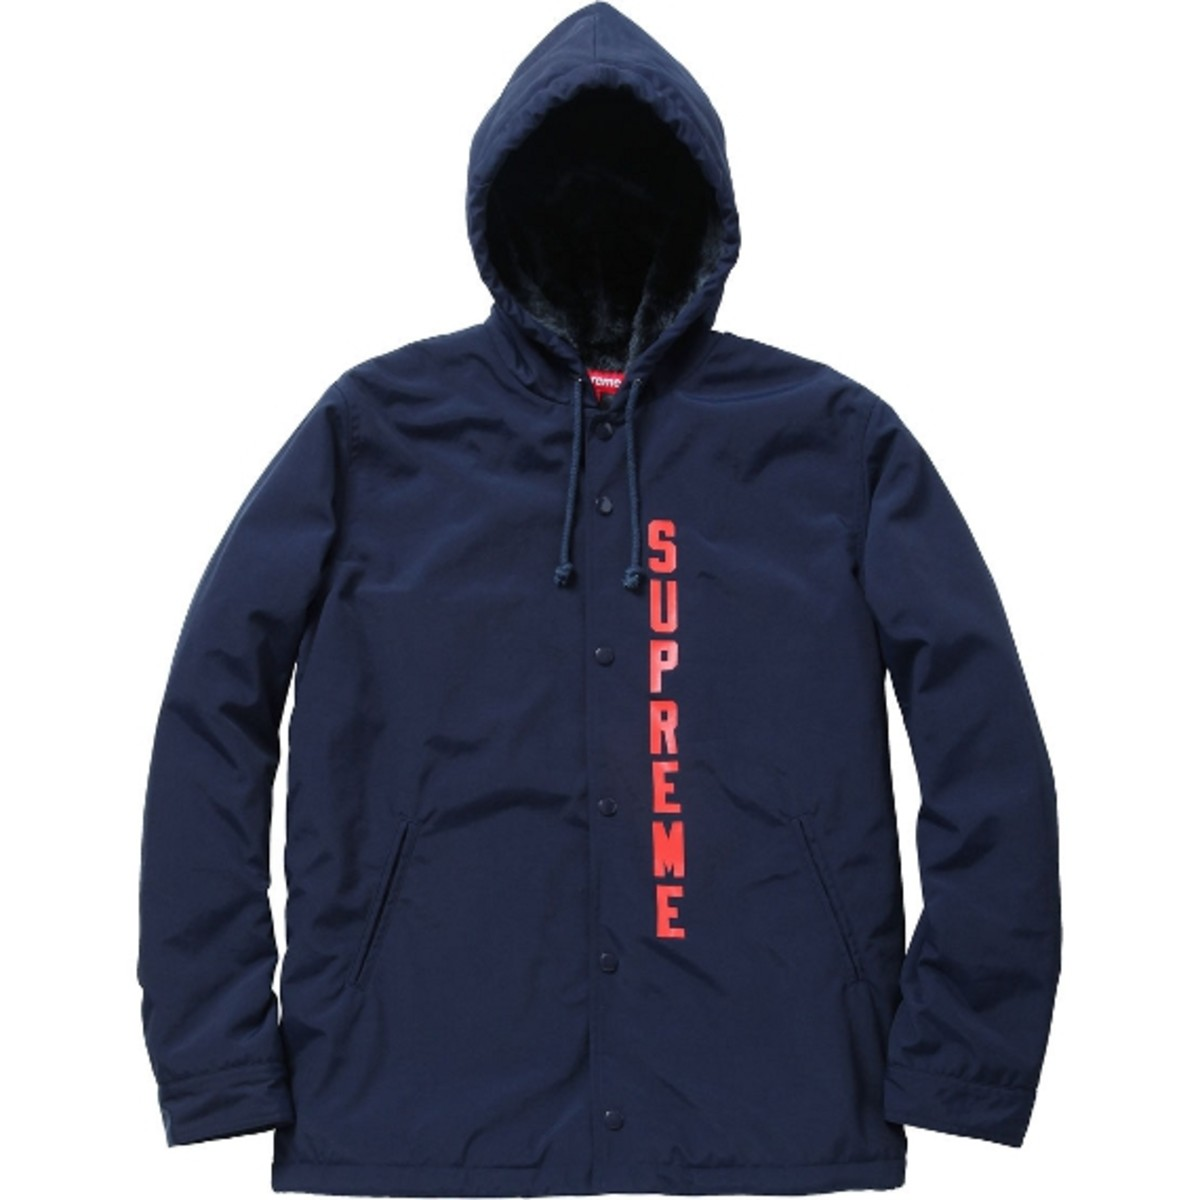 Thrasher X Supreme Hooded Coach Jacket Hoodies Available Now